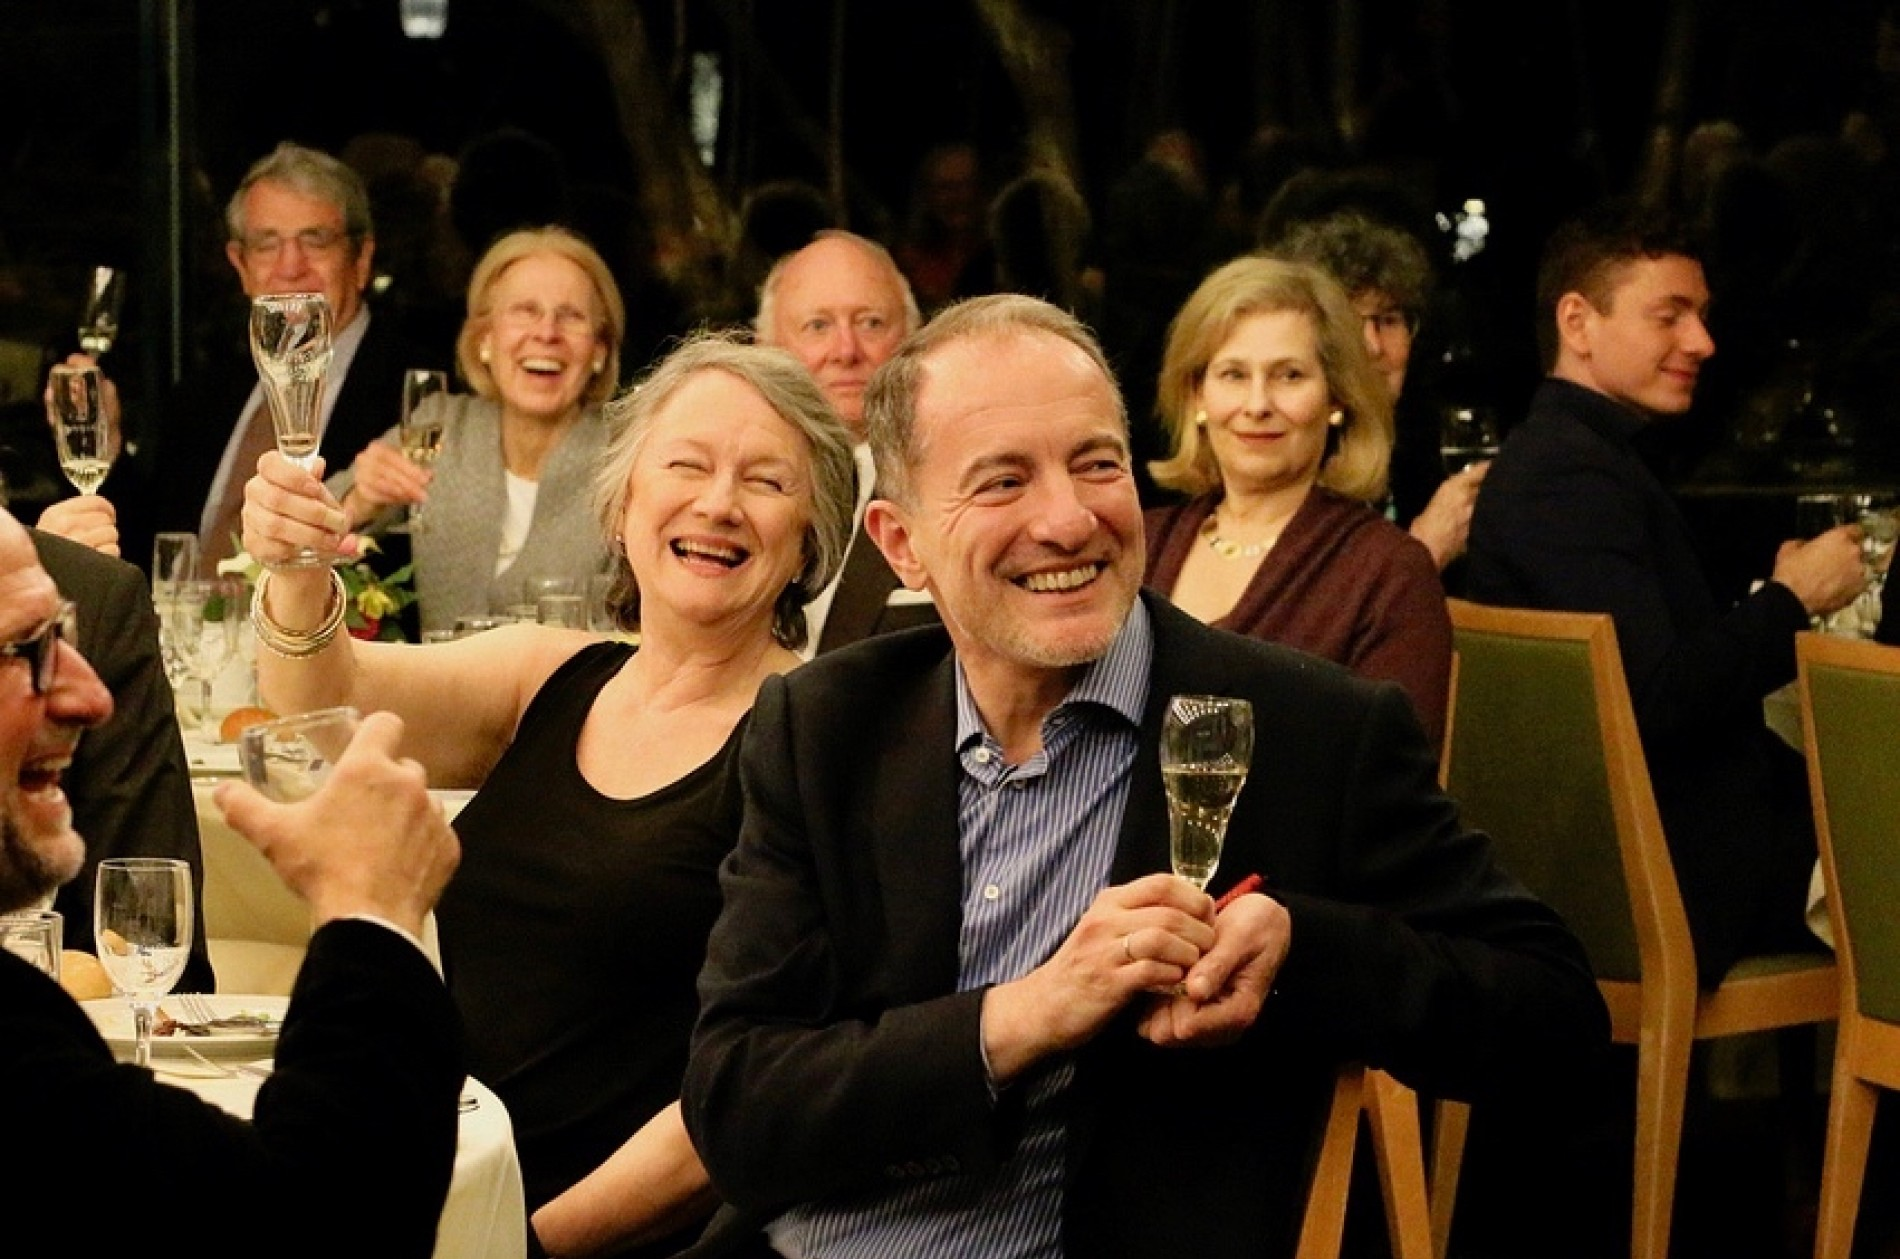 Sponsors toasting Rossen Milanov while seated at a dinner